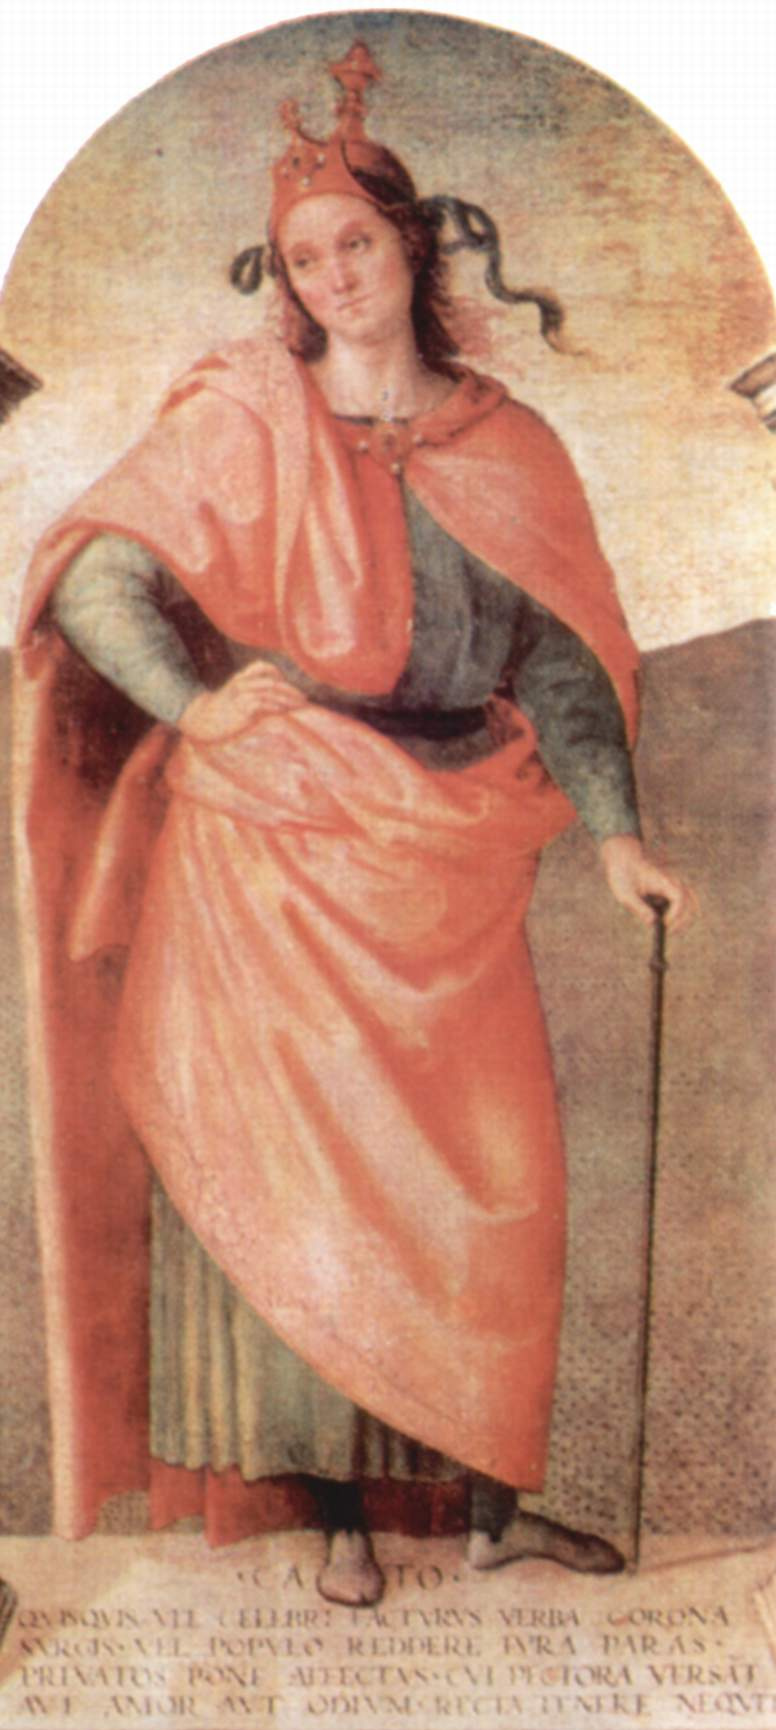 Pietro Perugino. The frescoes of the halls of the techniques of the management Board of the exchange in Perugia. Cato